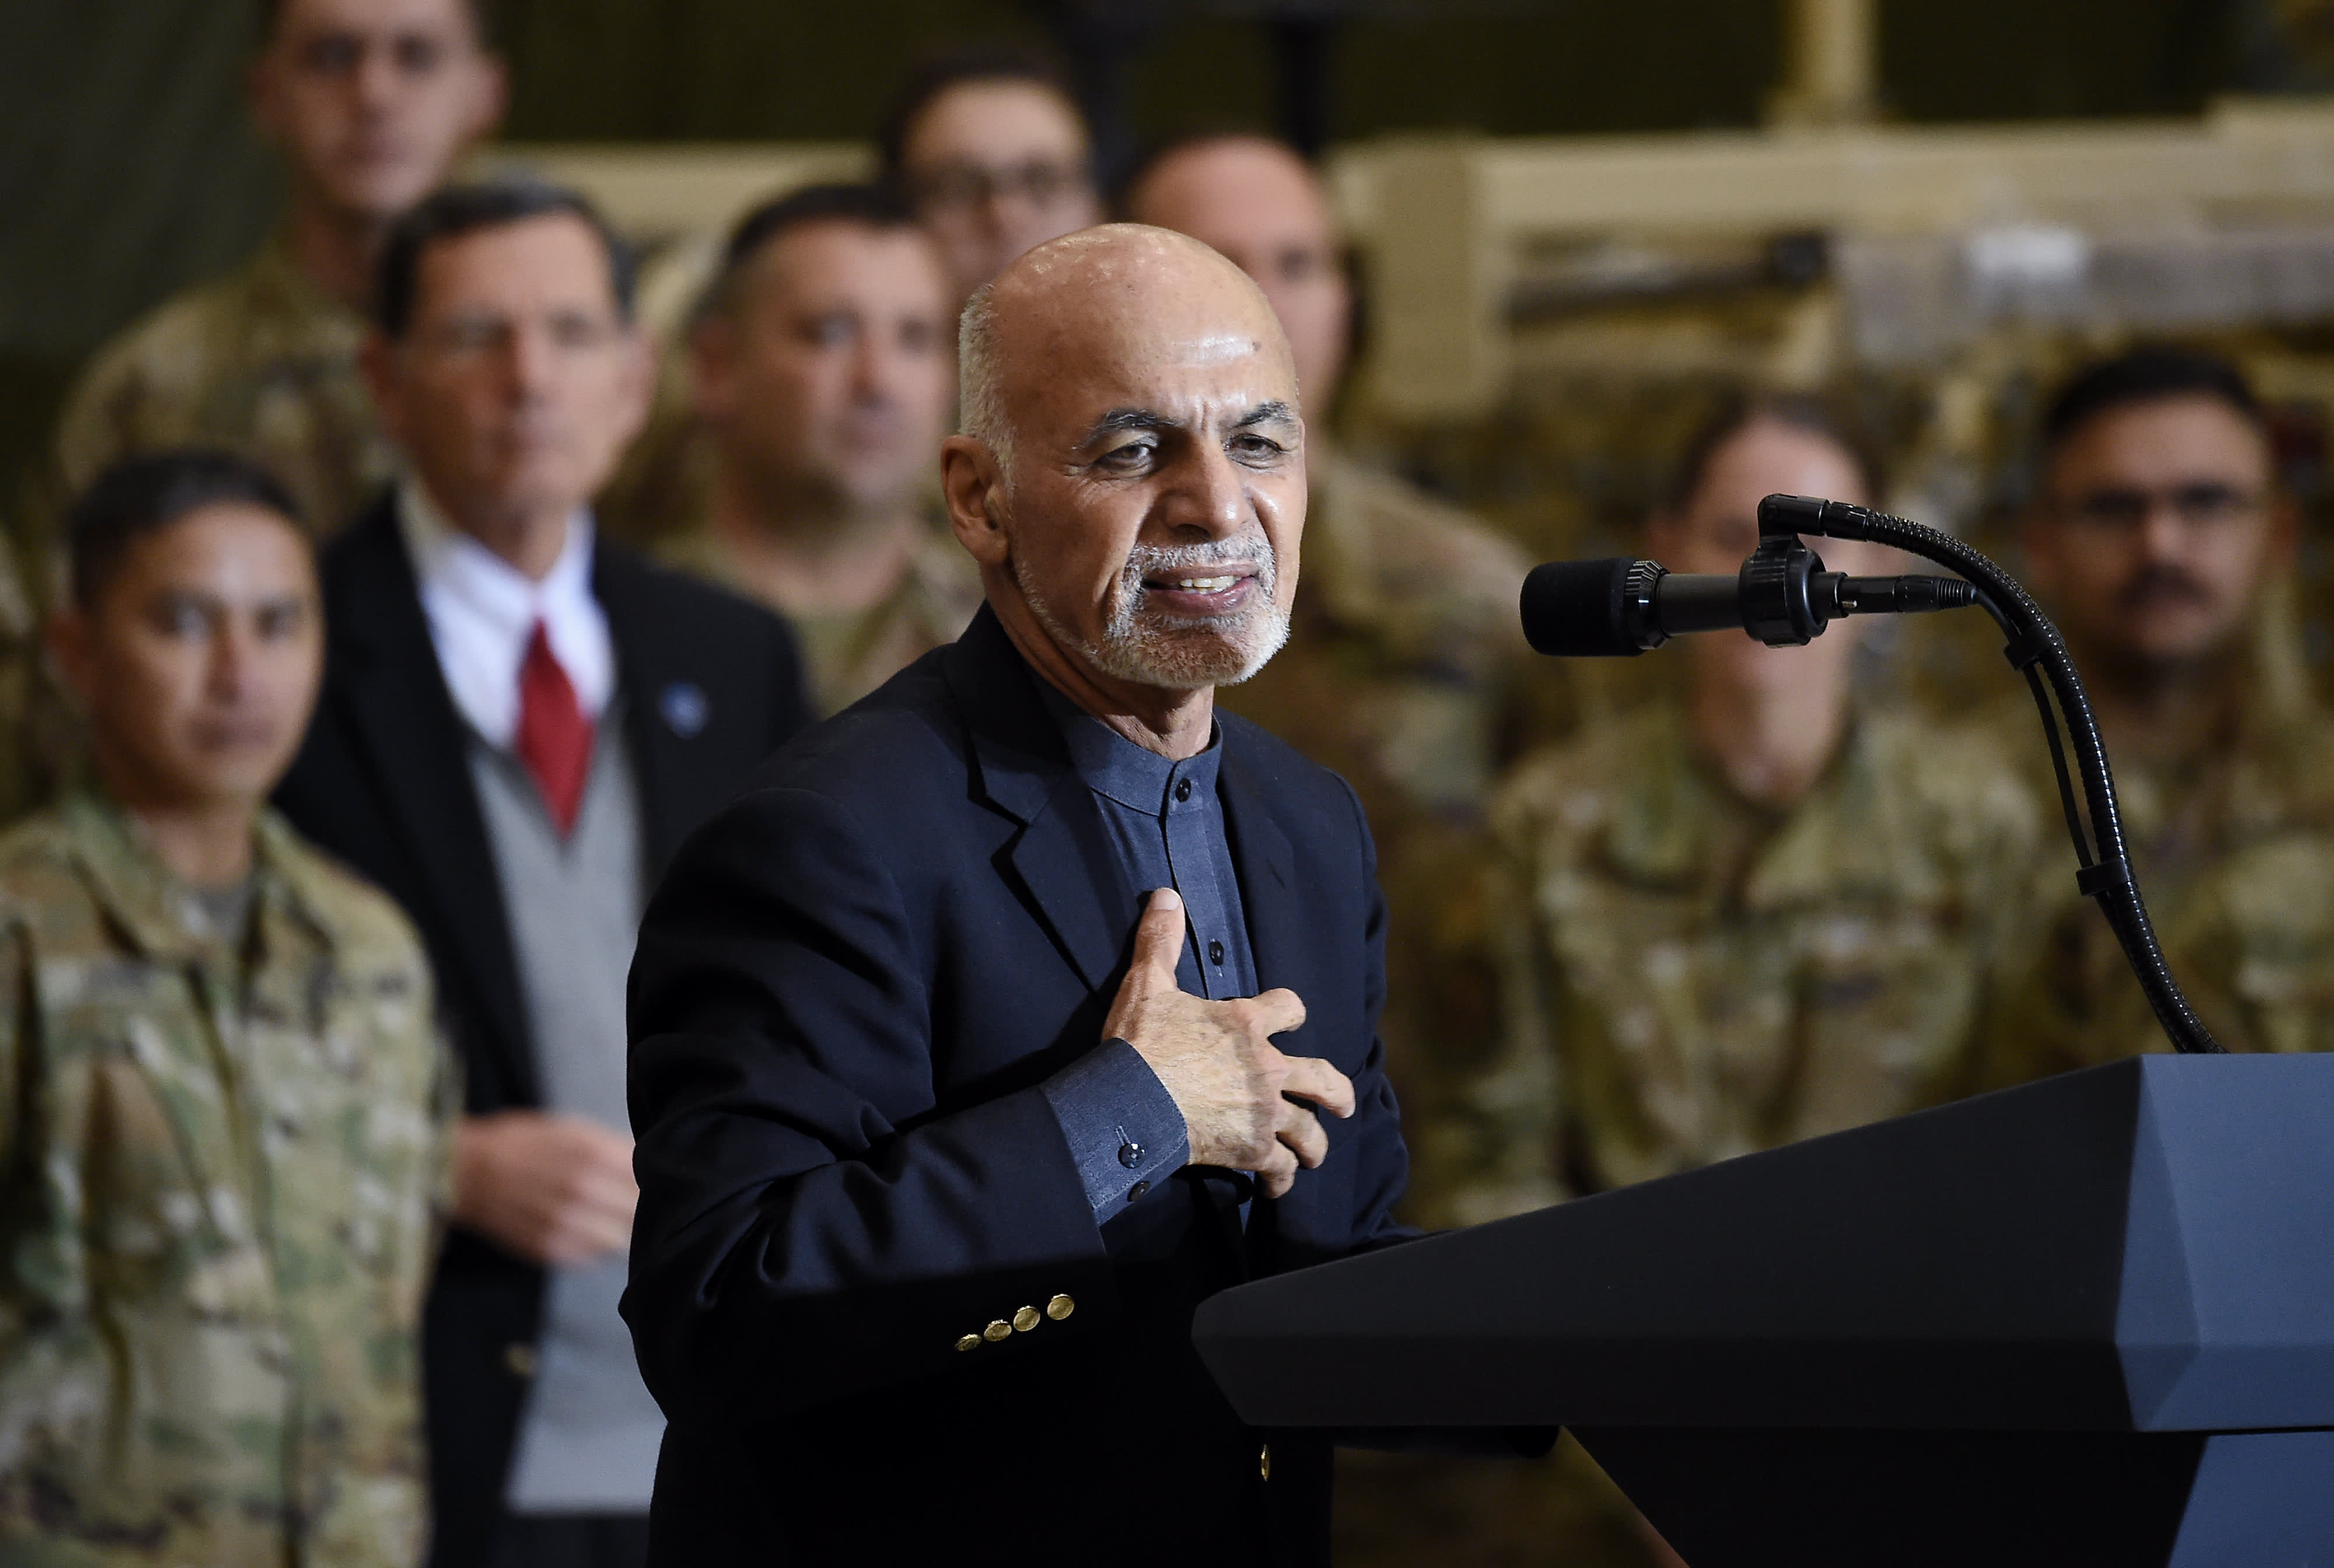 Afghanistan did not commit to release 5,000 Taliban, Ghani says